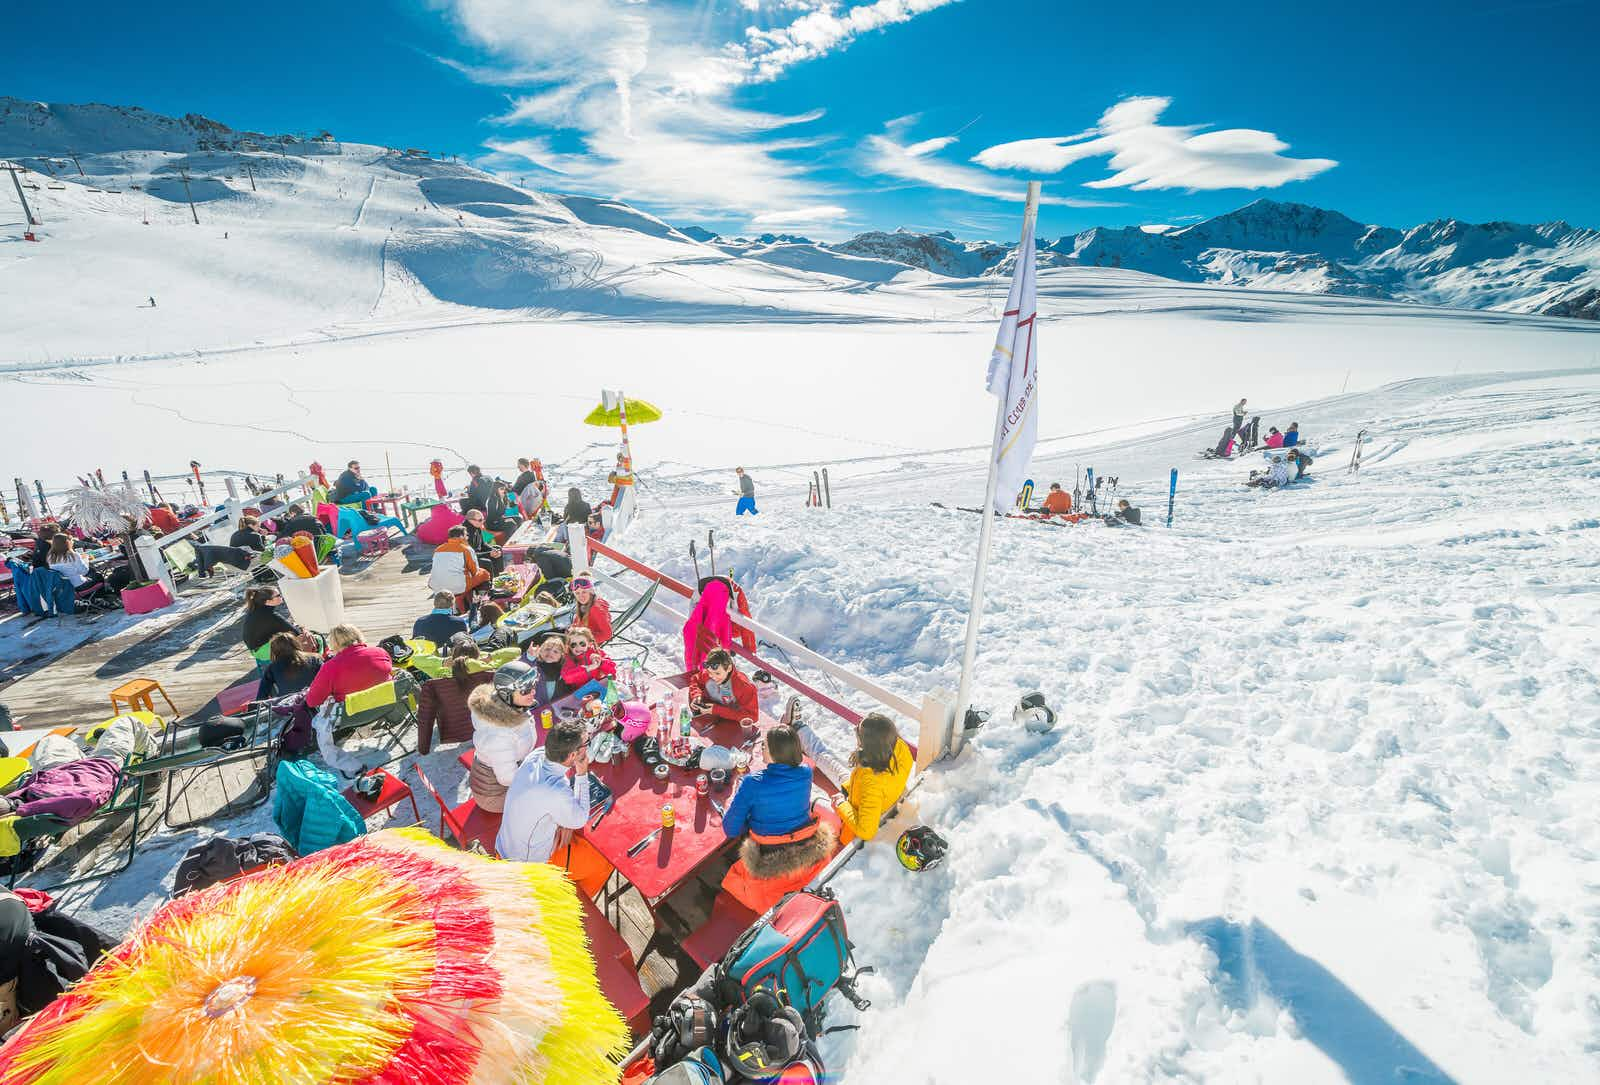 Val d'Isère: Europe's best destination for spring skiing?